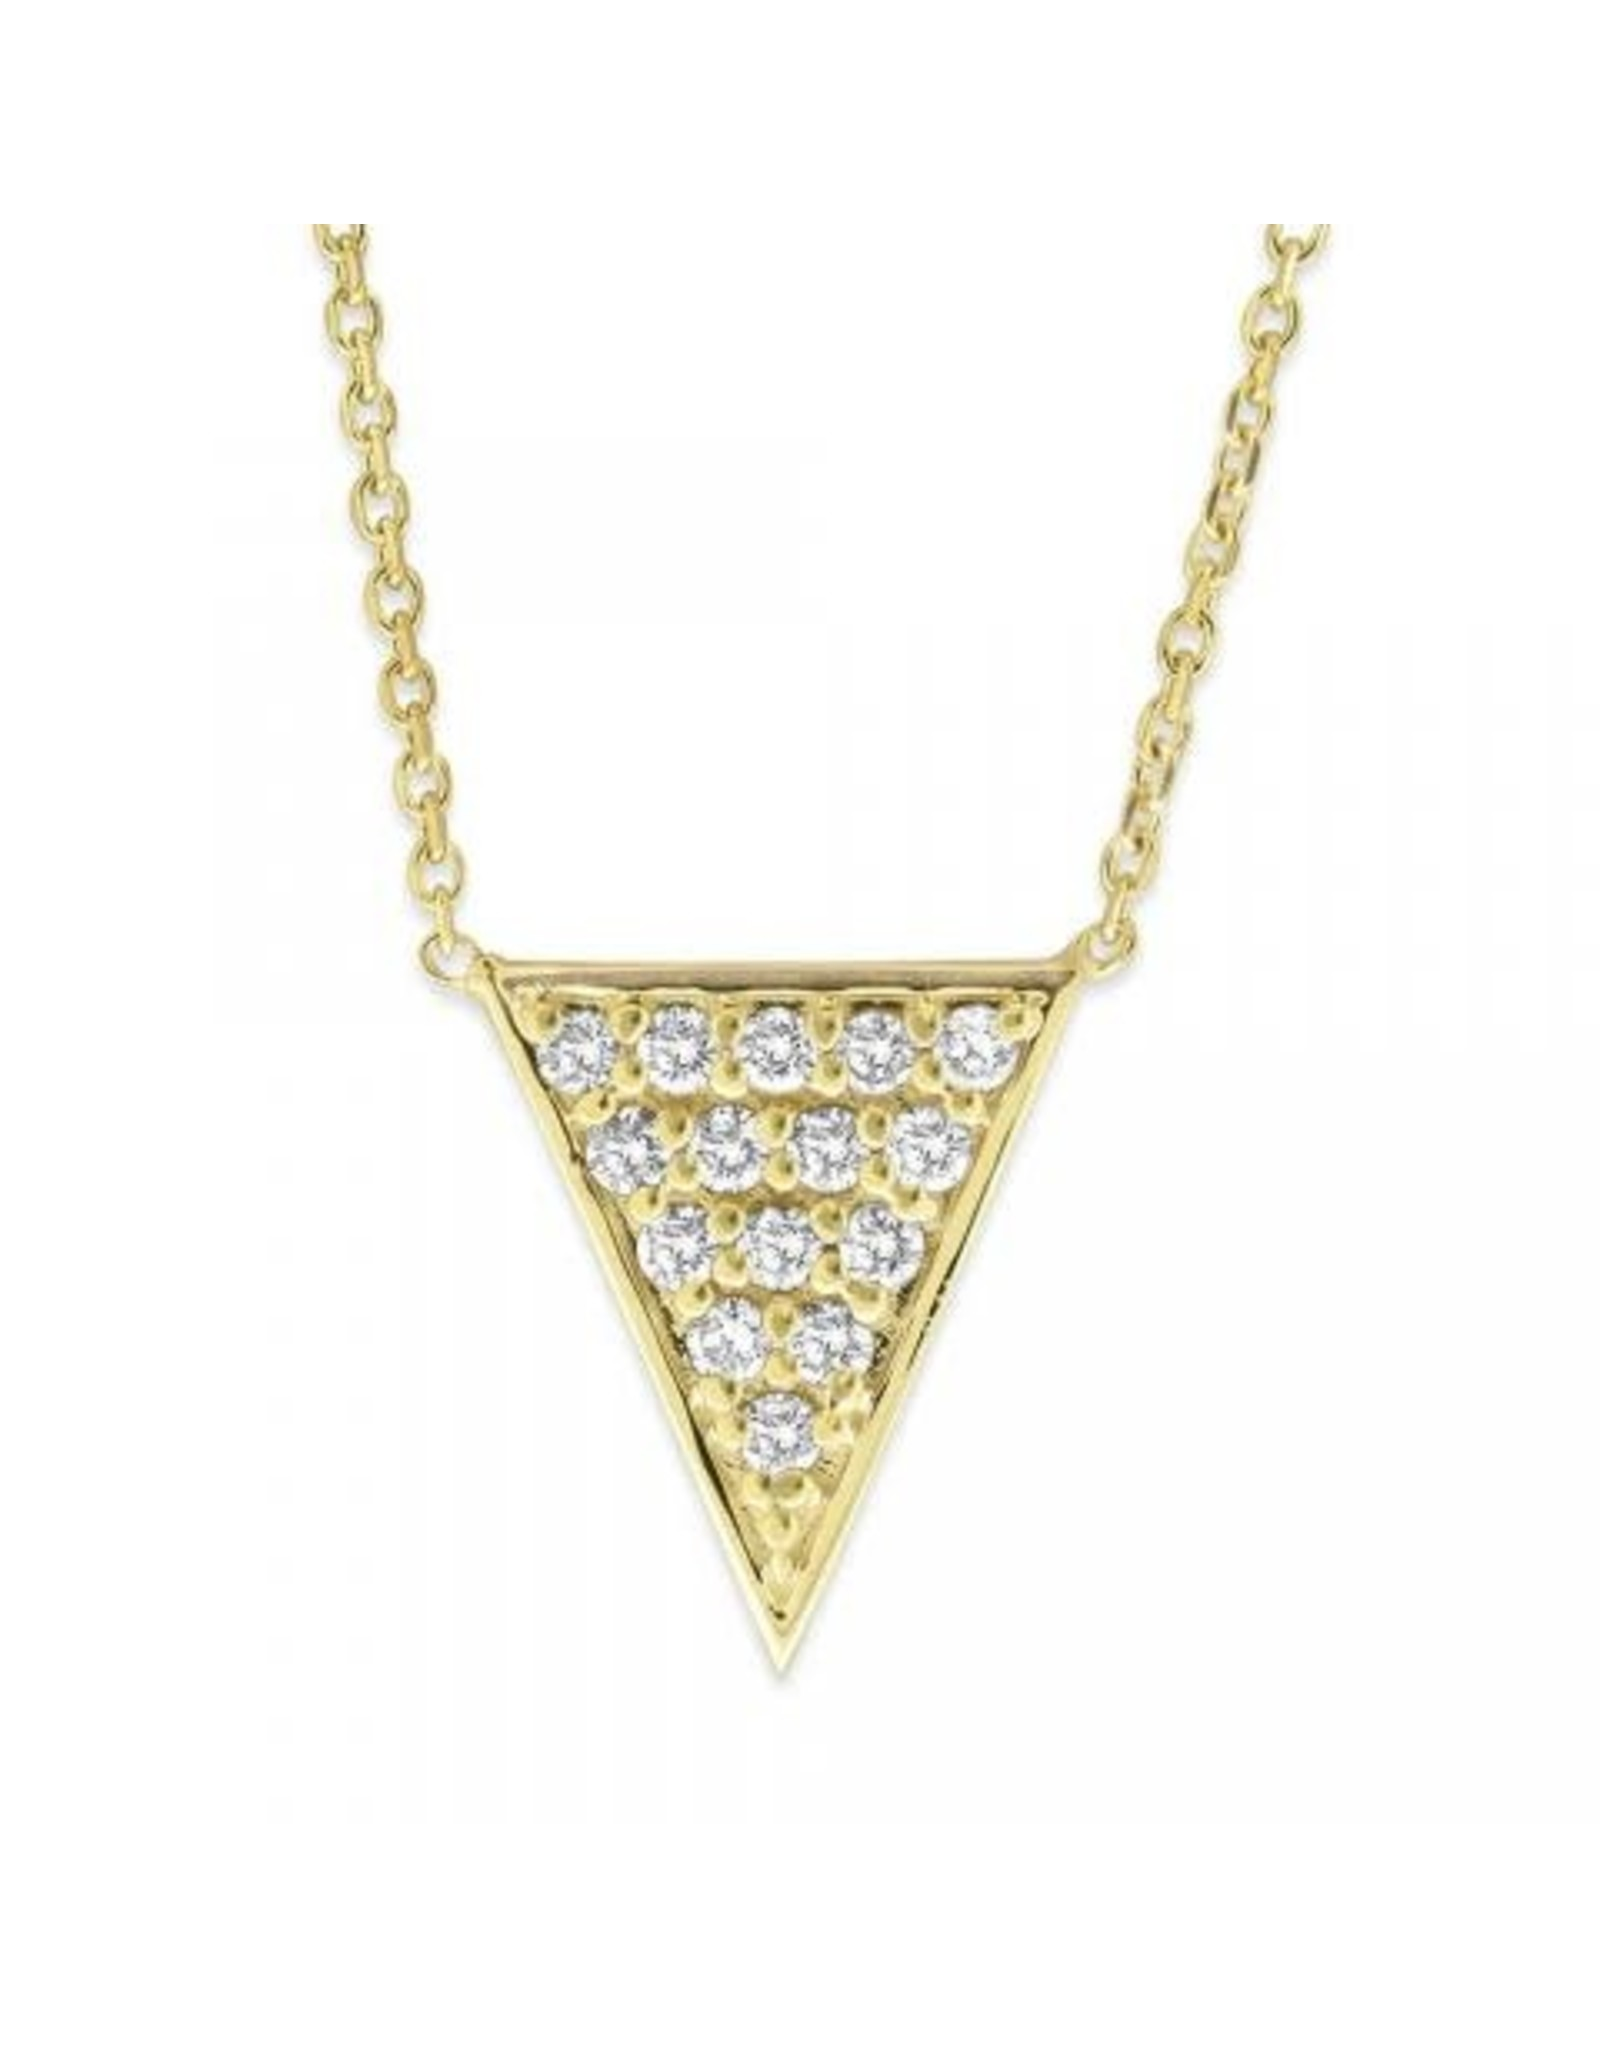 14K Yellow Gold Pave Diamond Triangle Necklace, D: 0.32ct